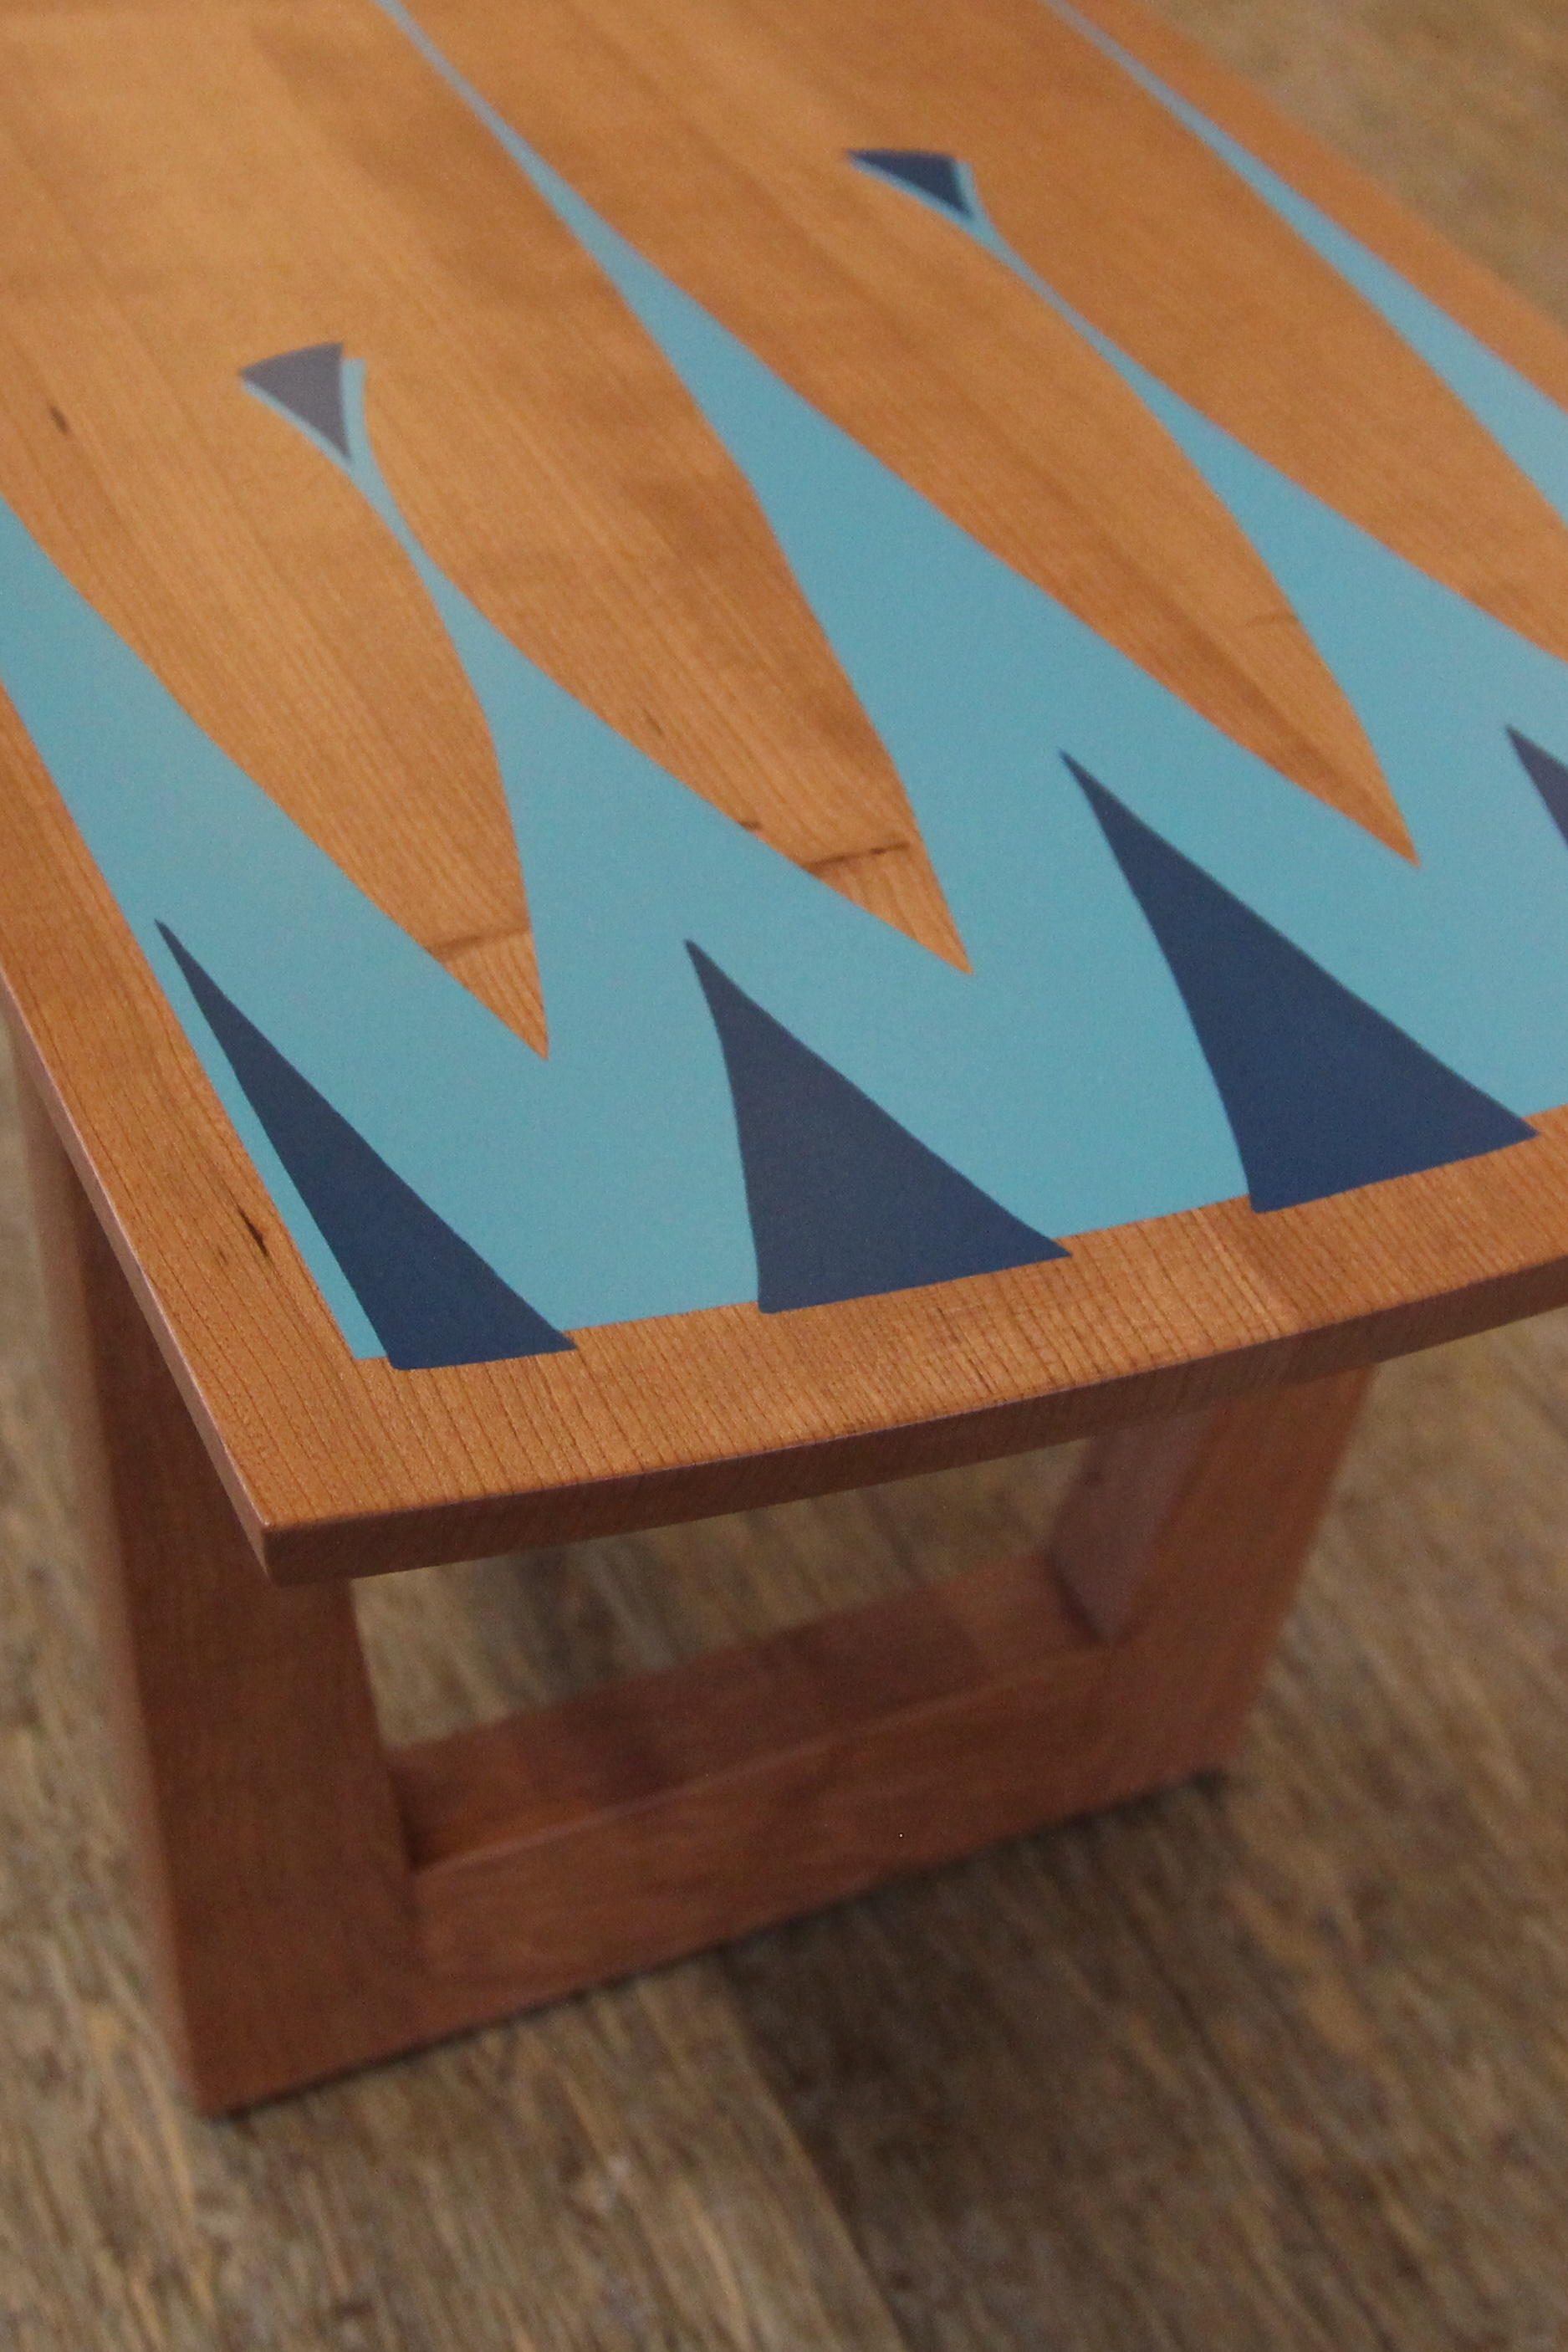 Cherry wood coffee table, with teal and light blue overlay.